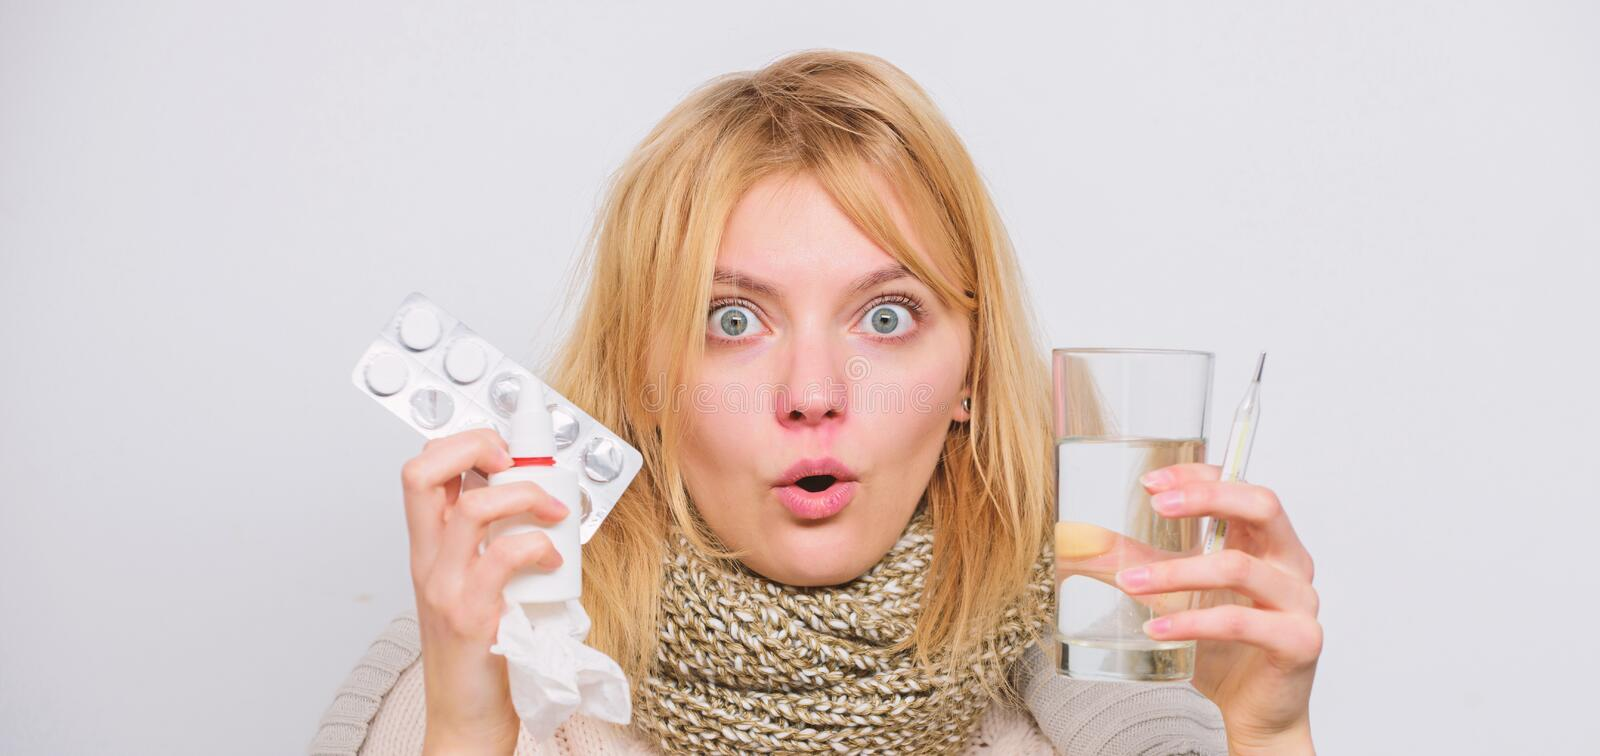 Drink plenty of fluids. Girl take medicine to break fever. Breaking fever concept. Headache and fever remedies. Woman. Sick person hold glass water and tablets stock photo